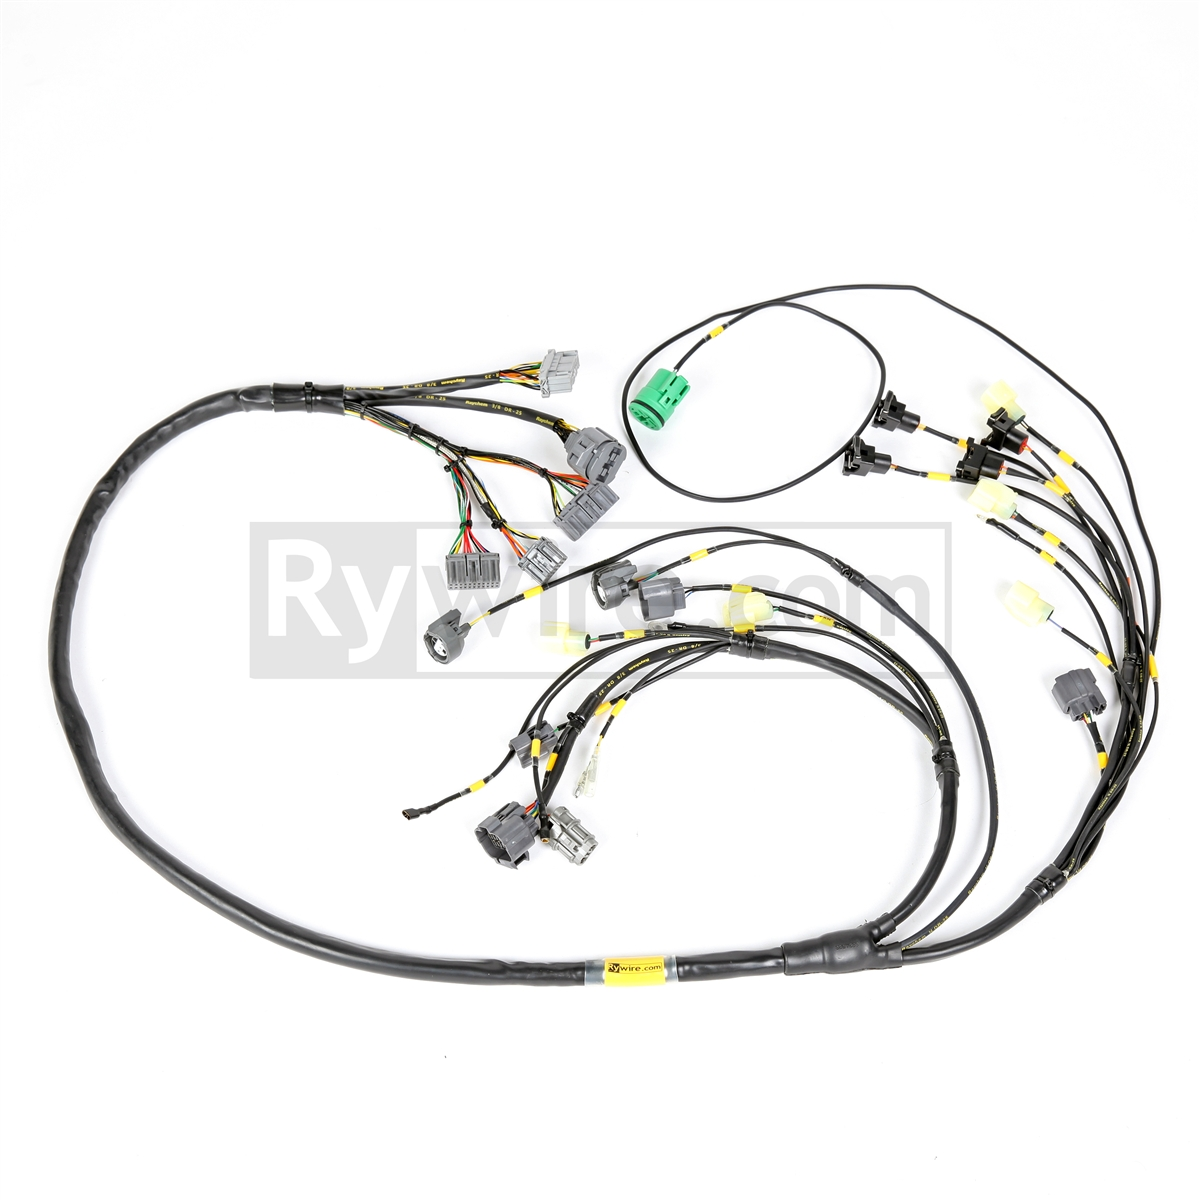 H1 Milspec 2?1402582650 rywire com mil spec f series (f20b) & h series (h22) harness h22 engine wiring harness at fashall.co